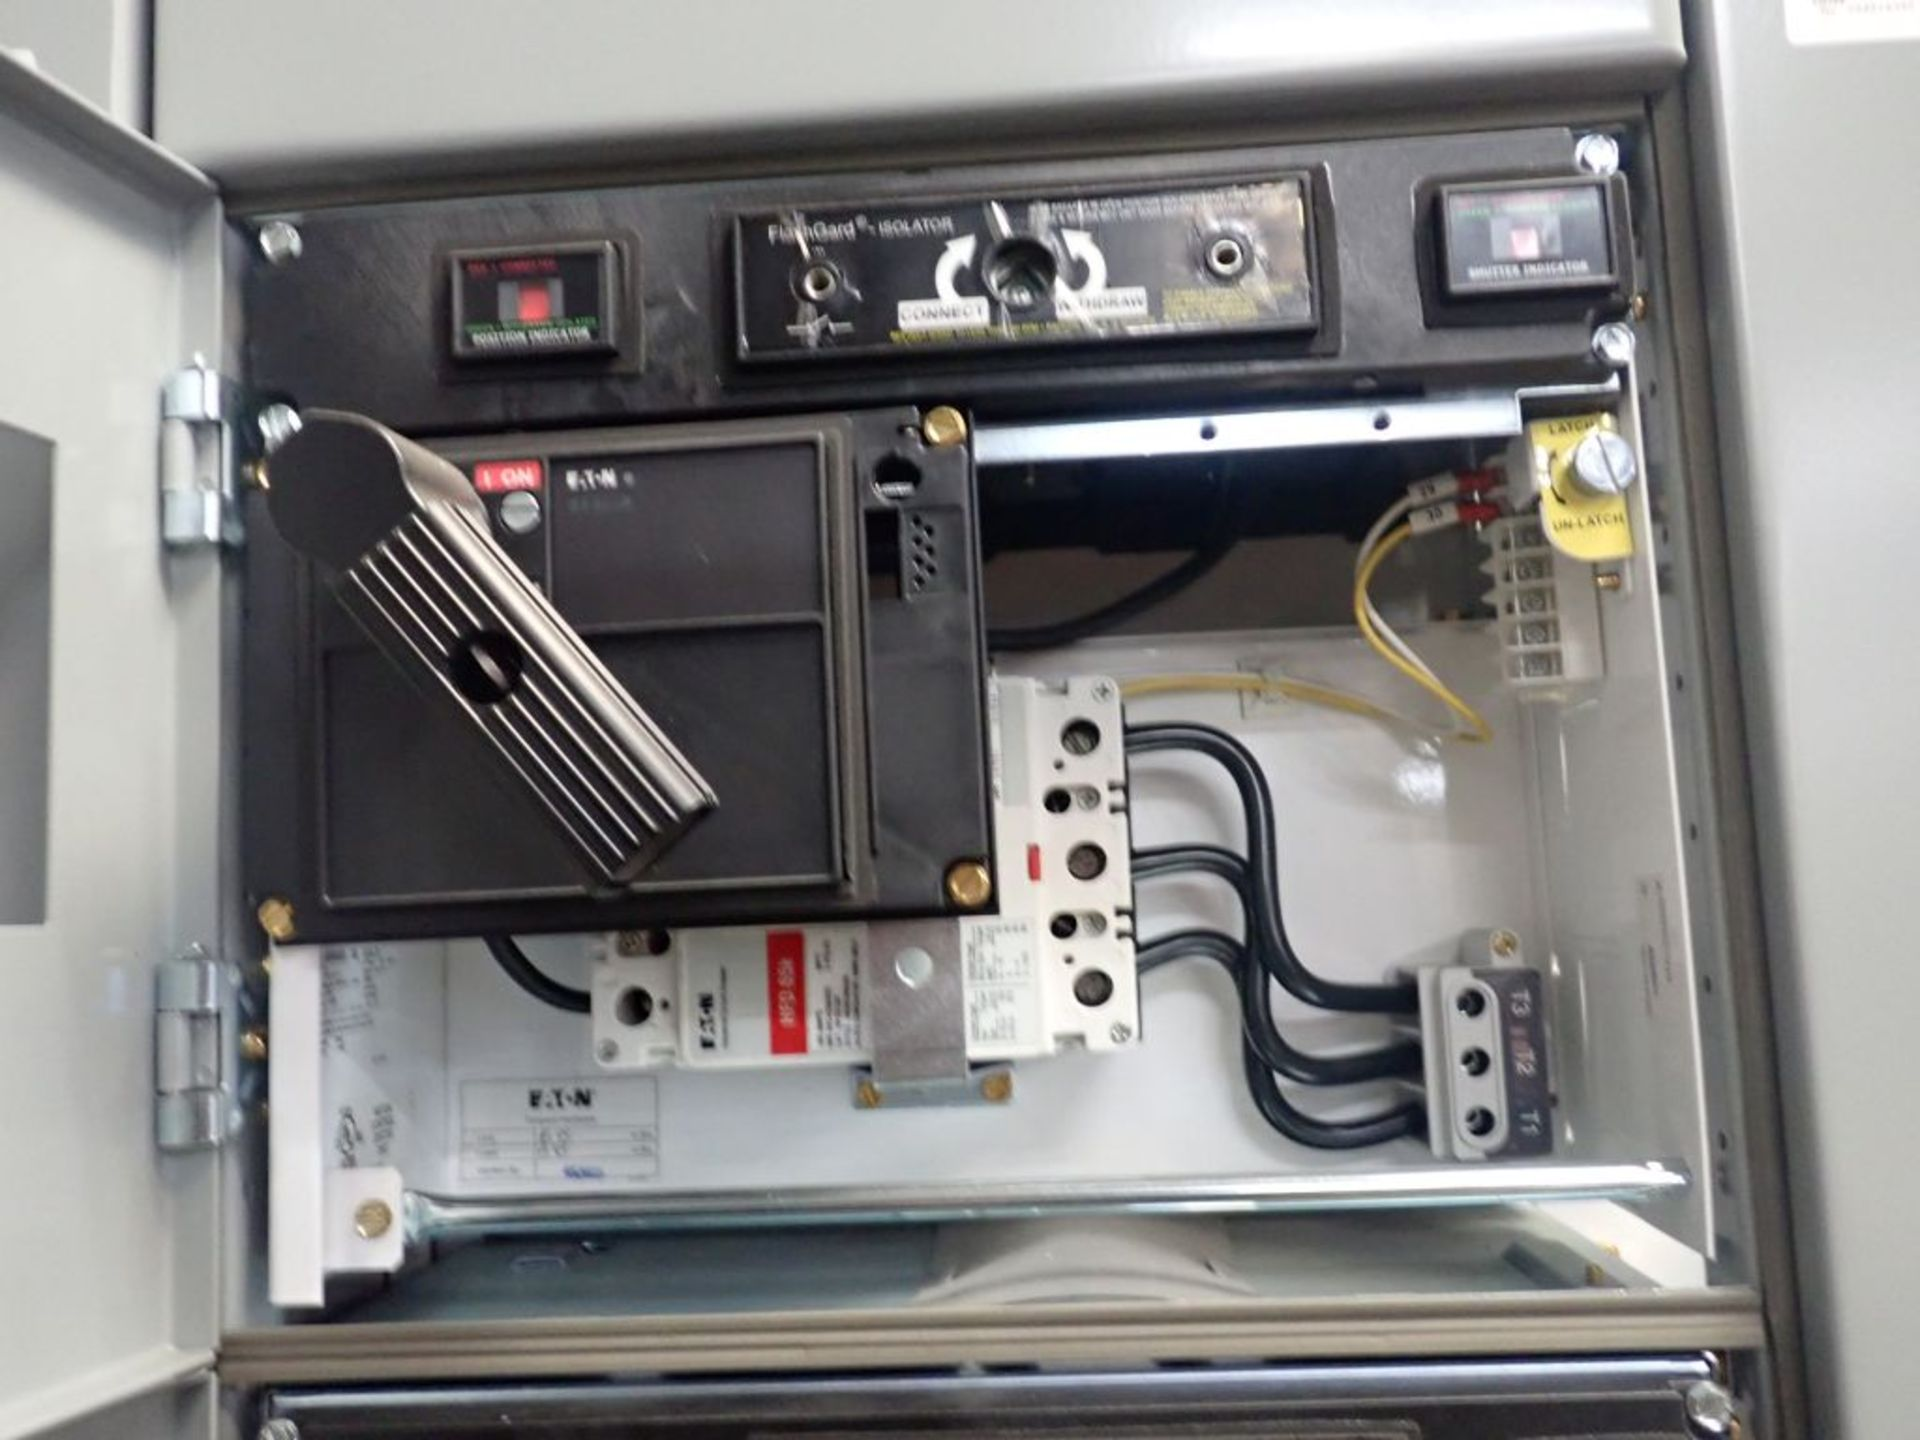 Eaton Freedom Flashgard Motor Control Center   (3) F216-15A-10HP; (1) FDRB-125A, with 150A - Image 38 of 57